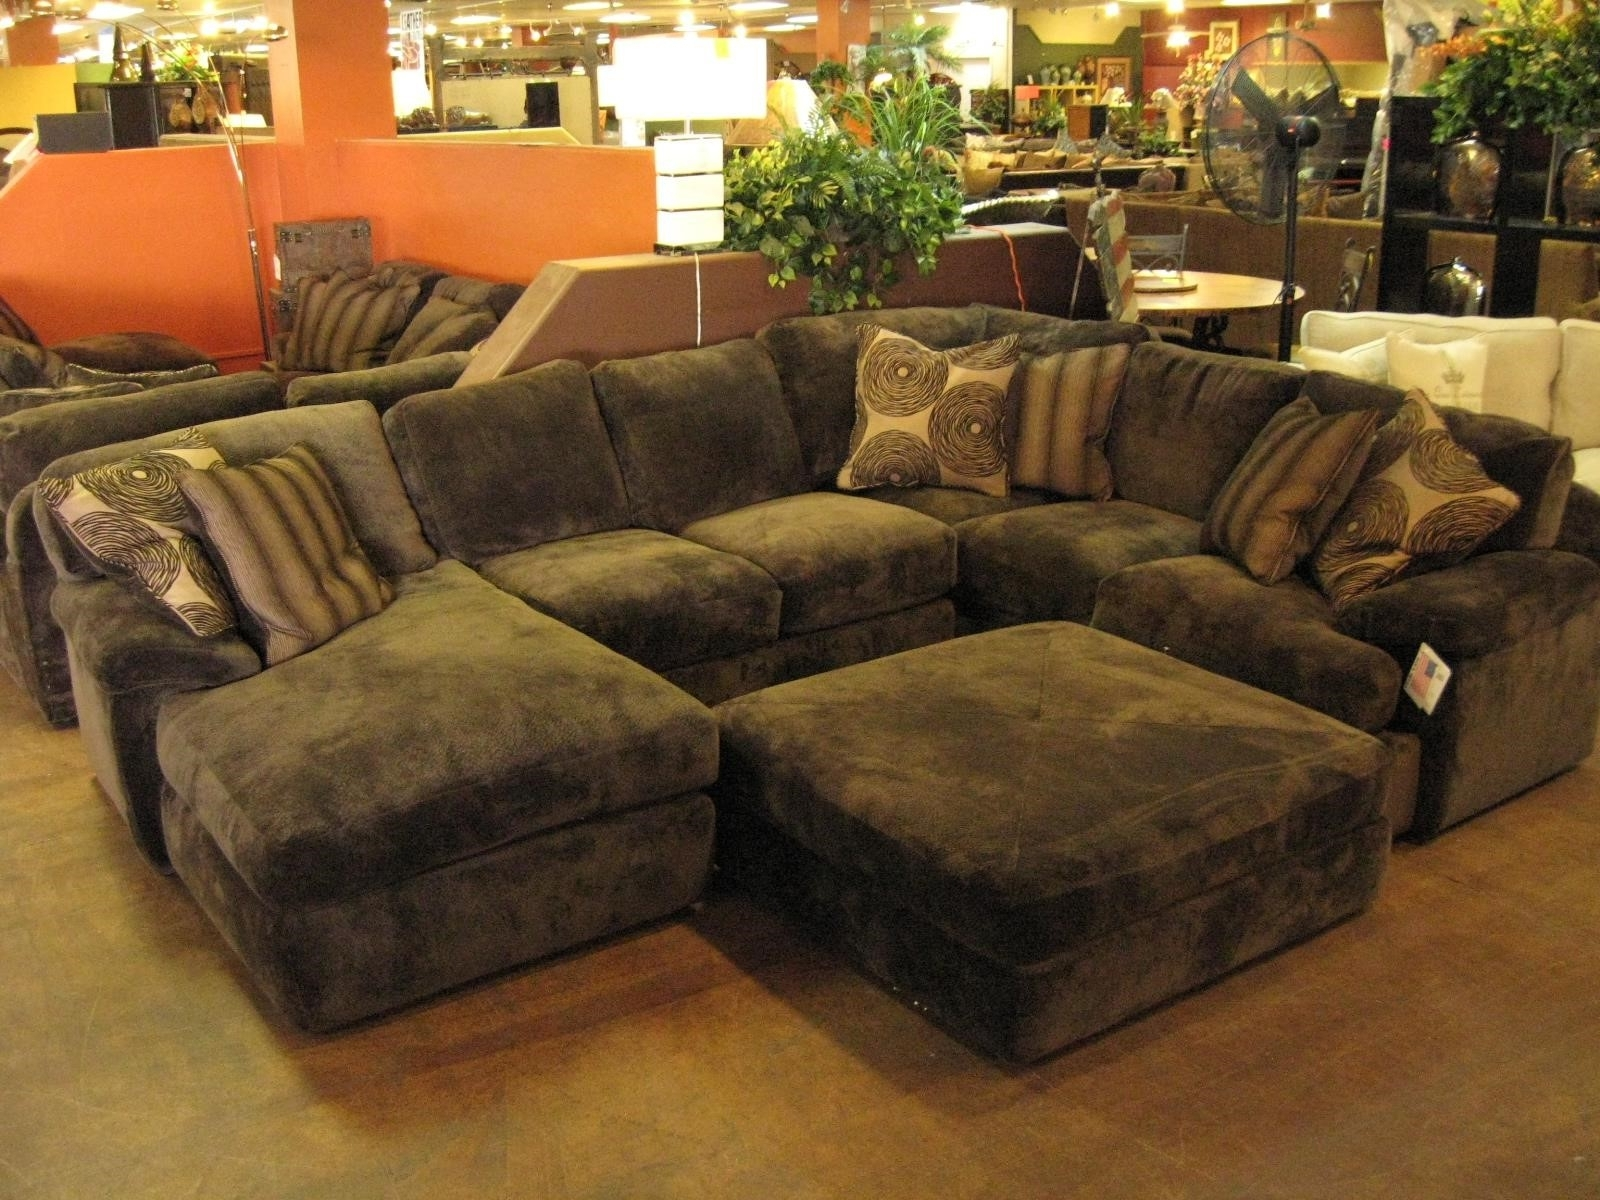 Most Recently Released Sofas Marvelous Brown Sectional Couch Cheap For Large Sofa With Intended For Sectional Sofas With Chaise Lounge And Ottoman (View 4 of 15)